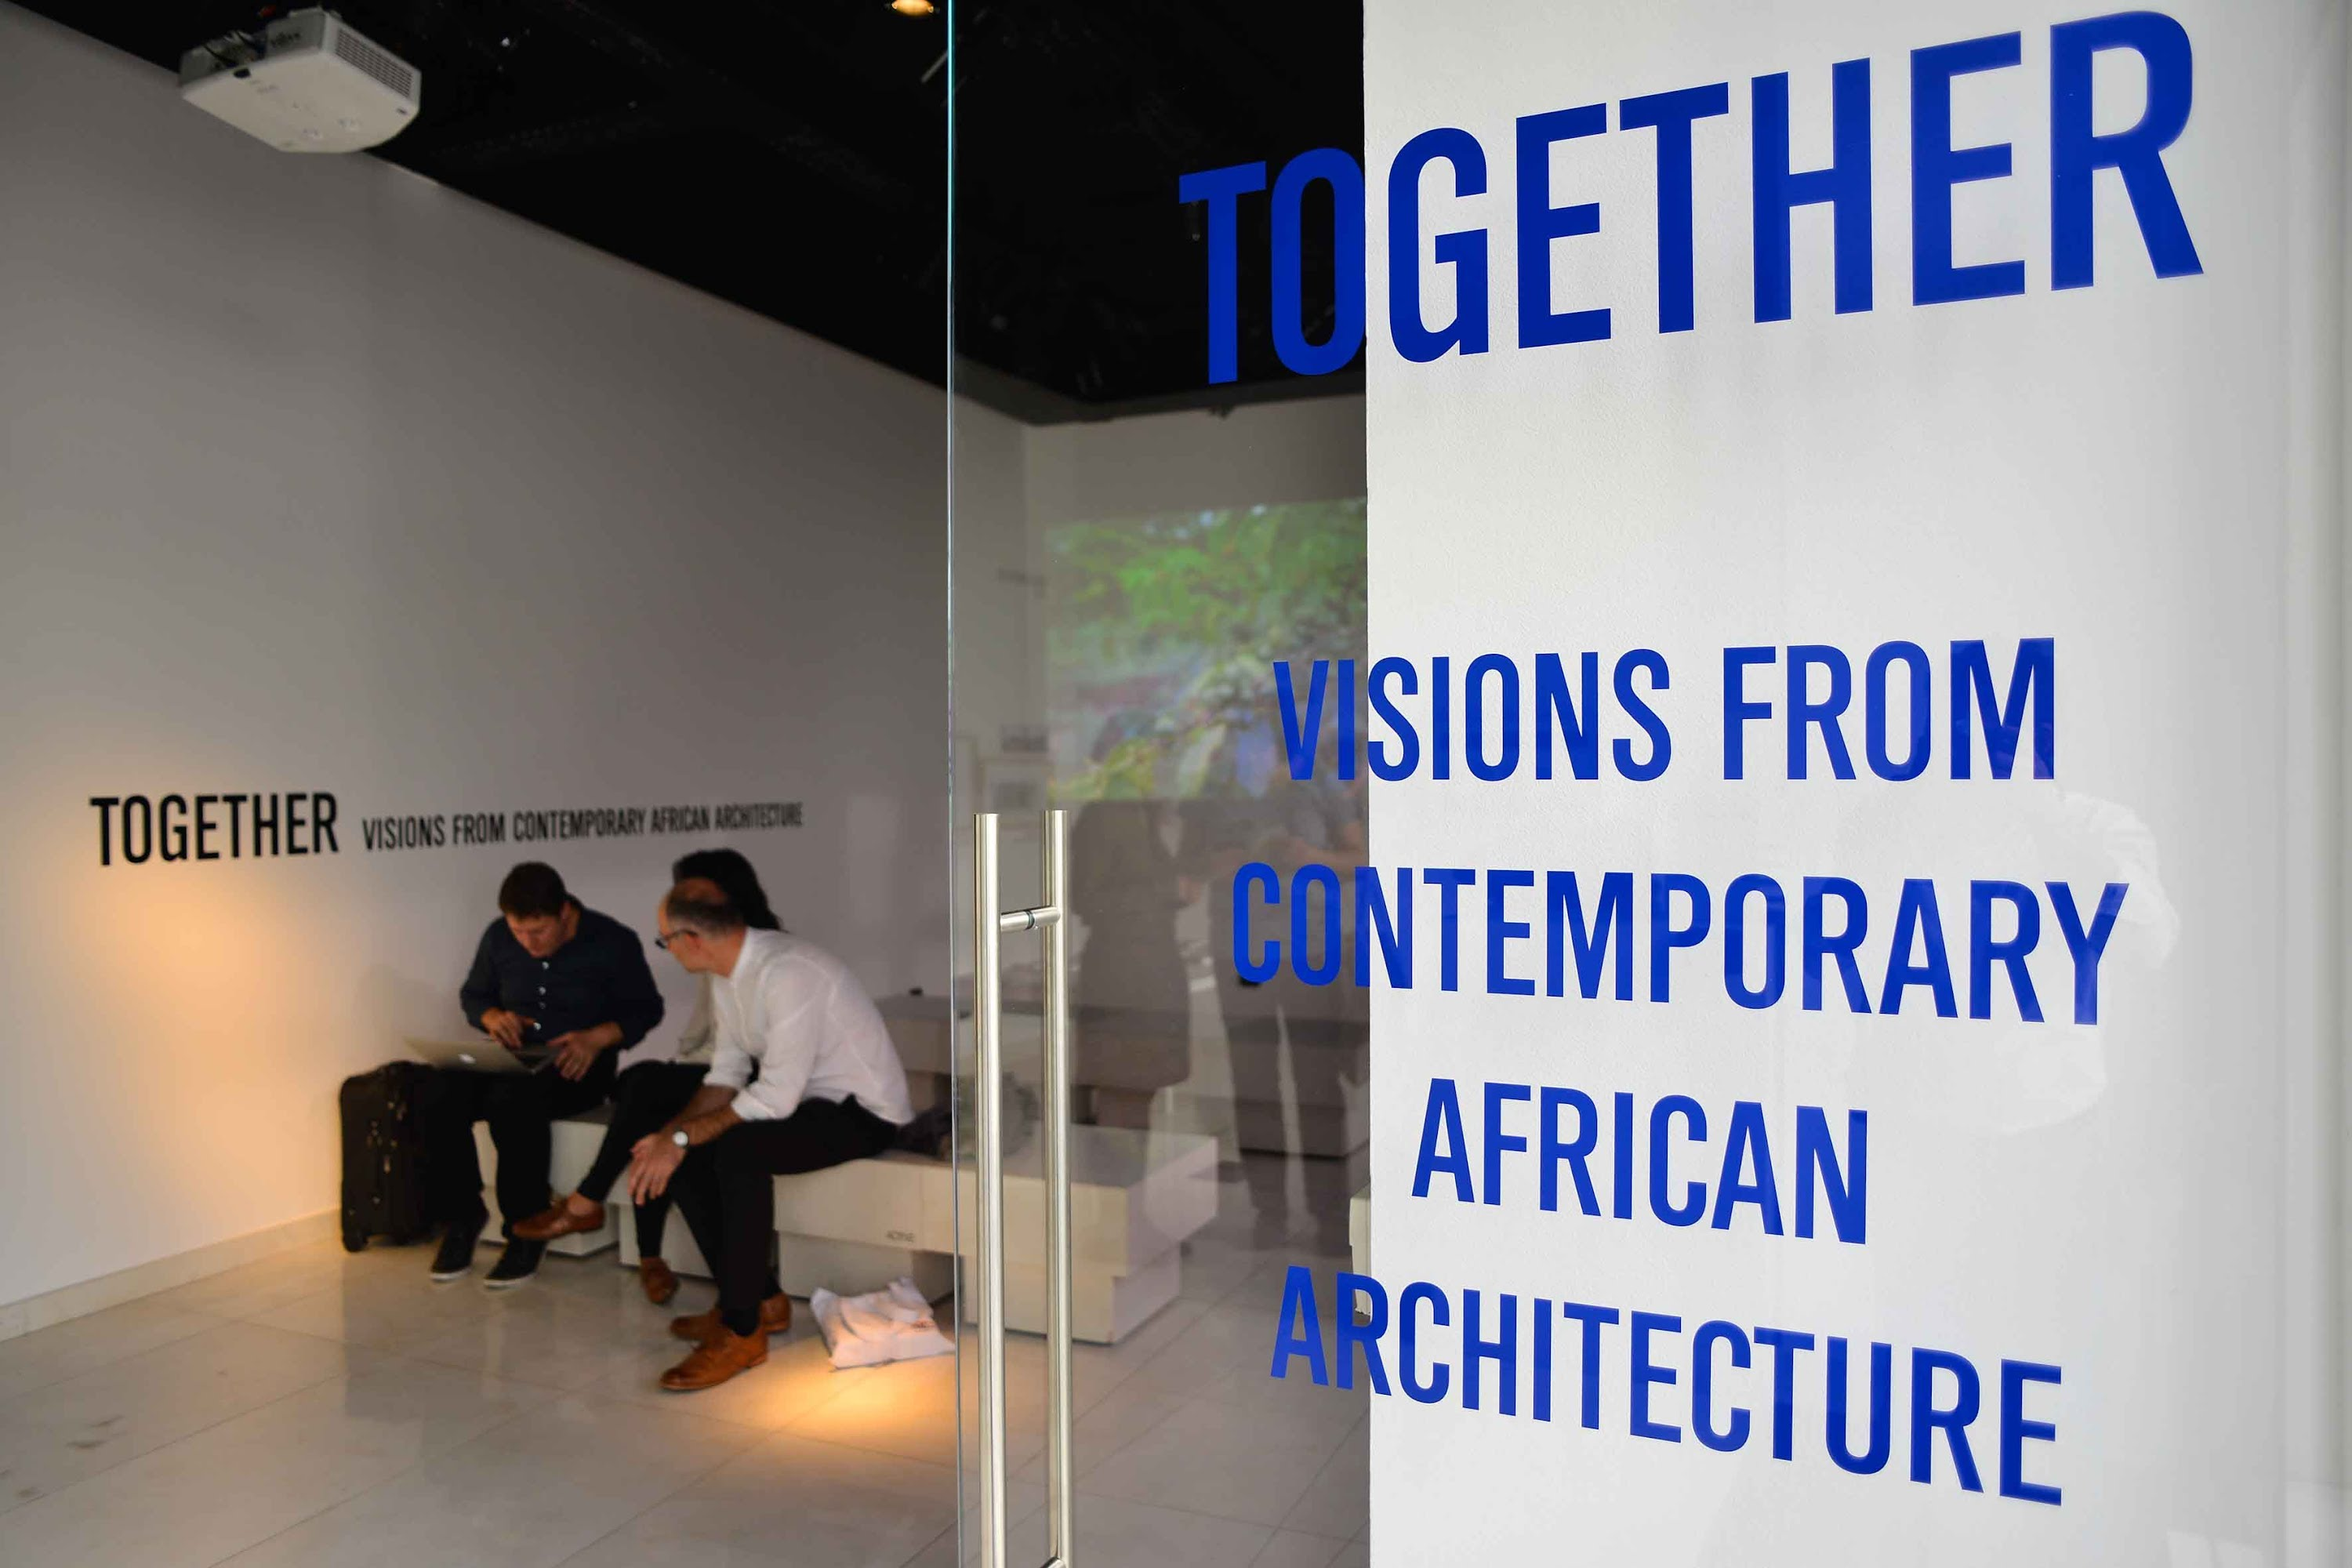 TOGETHER – LE NUOVE COMUNITA' IN AFRICA | Video